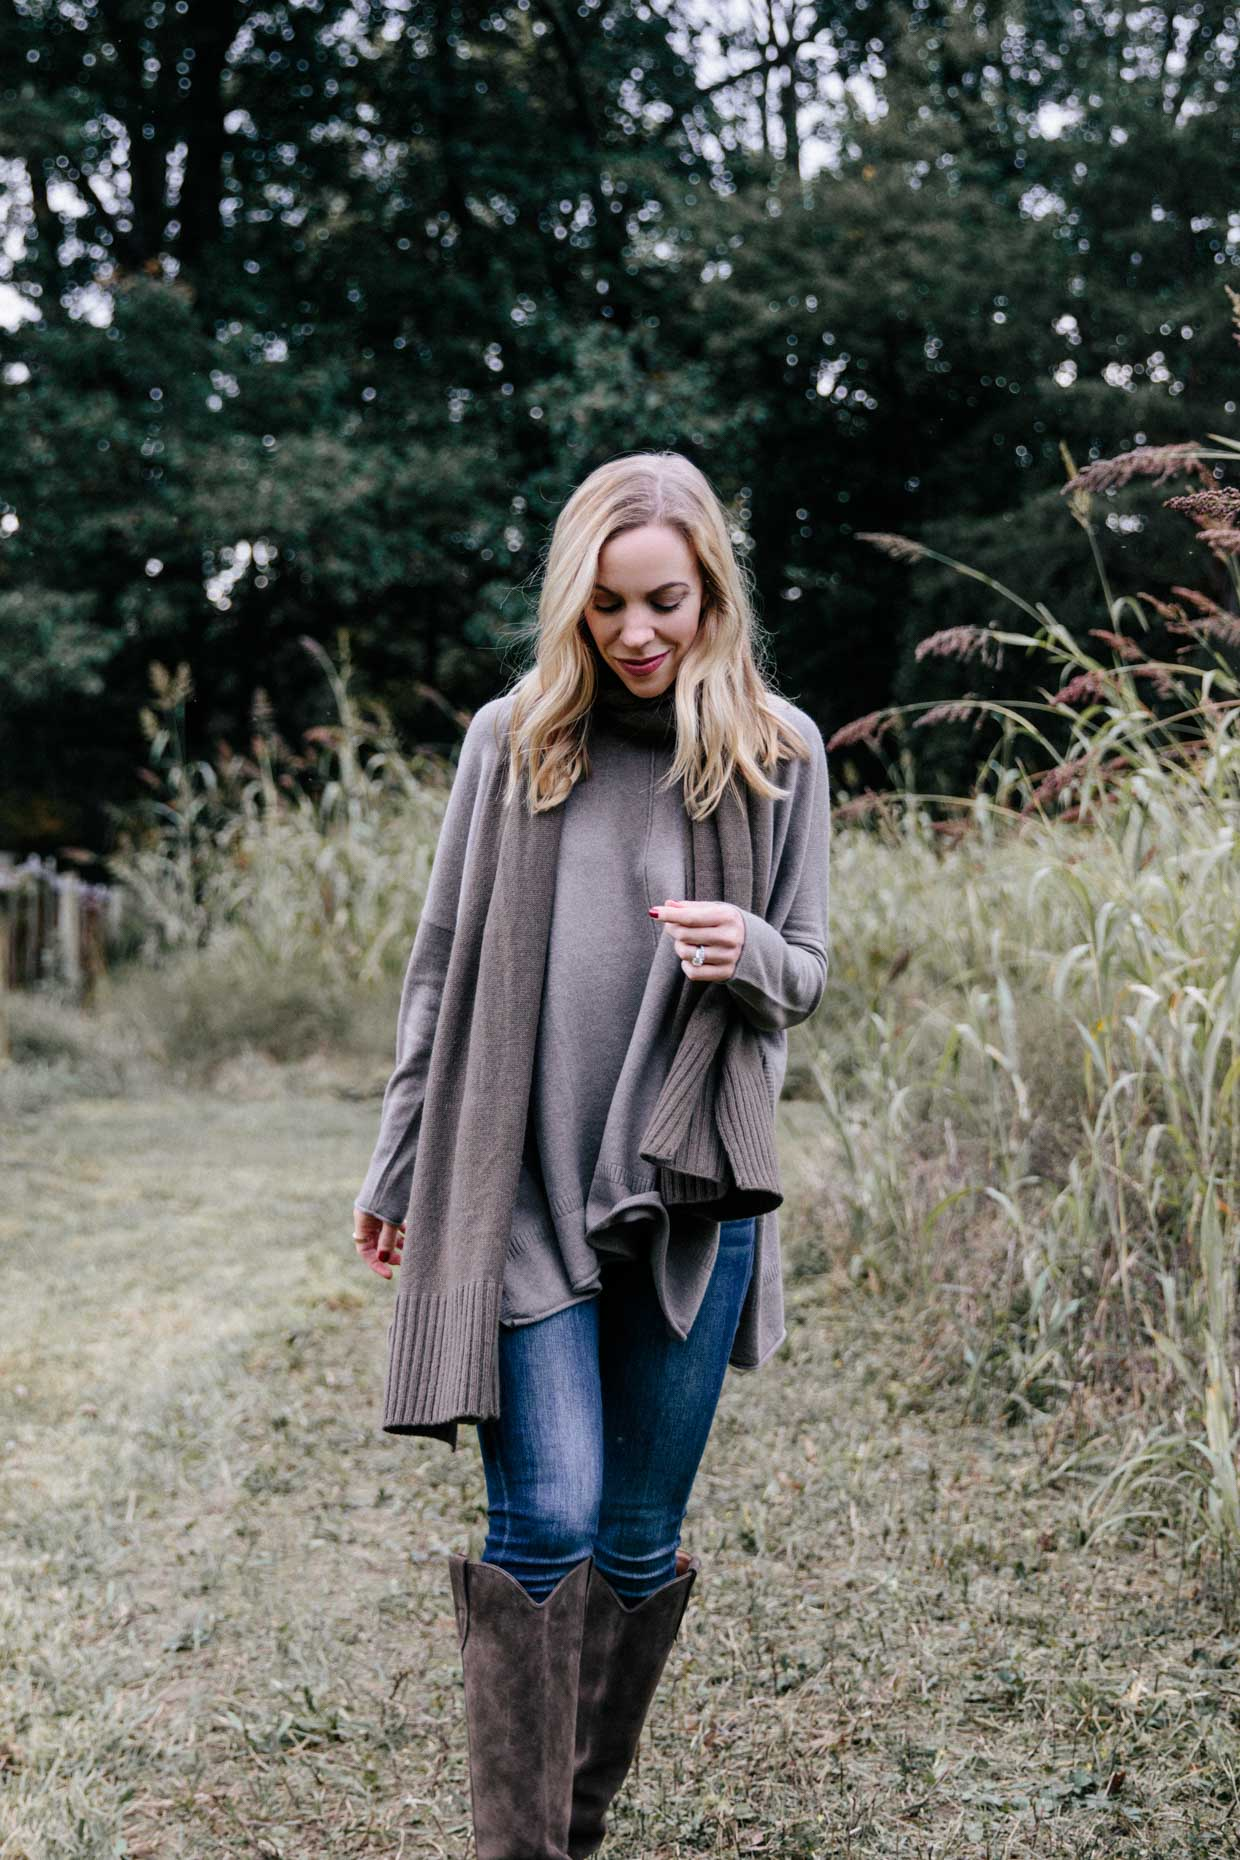 Meagan Brandon fashion blogger of Meagan's Moda wears State Cashmere oversized sweater with olive green scarf and western boots